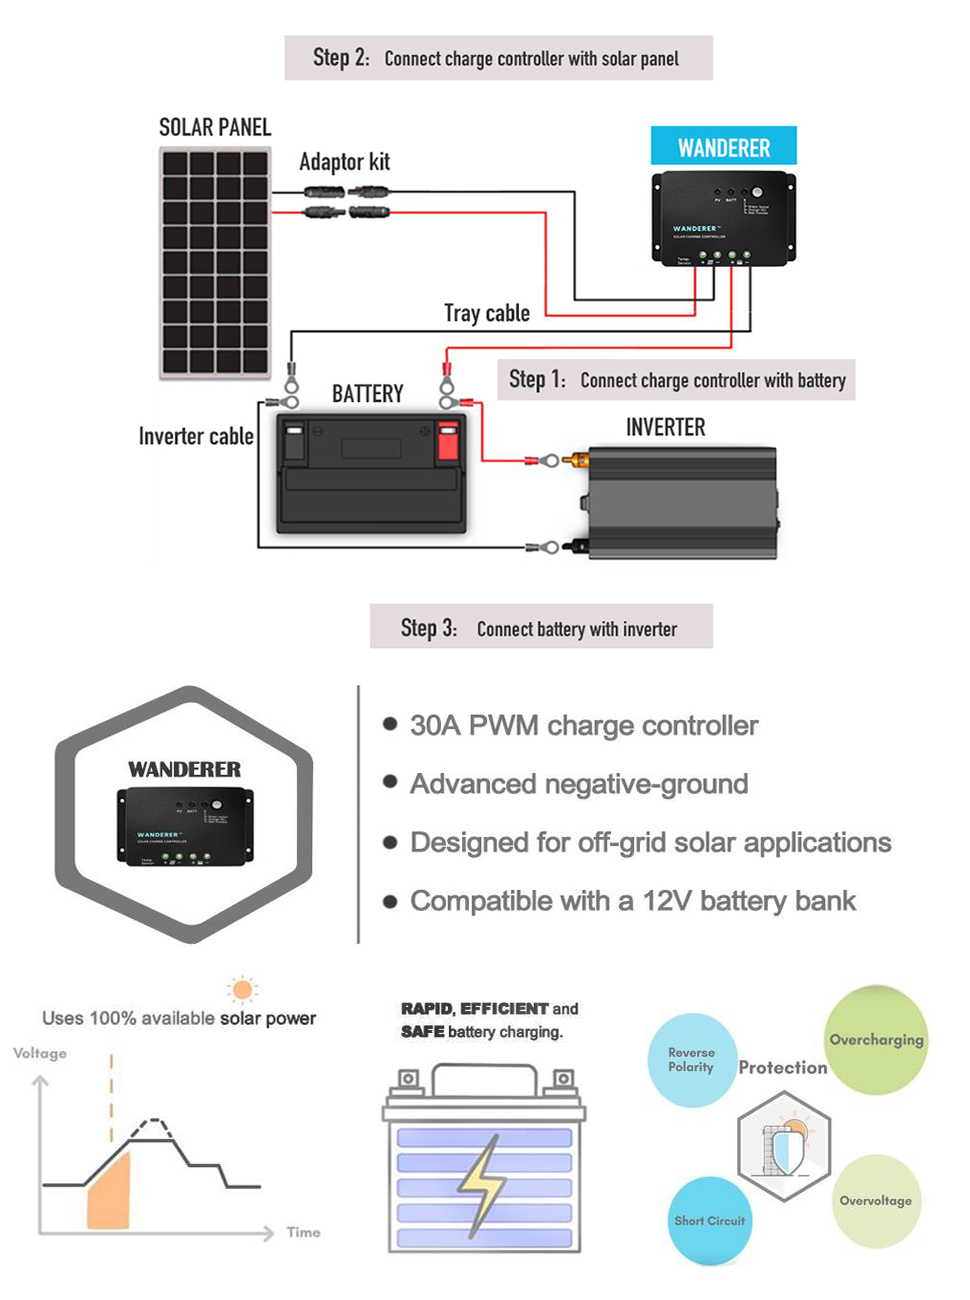 Renogy 200 Watts 12 Volts Monocrystalline Solar Starter Kit Off Grid Wiring Diagram Two Of 100w Panels One 30a Pwm Charge Controller 20ft Mc4 Adaptor 8ft Tray Cable Sets Z Brackets